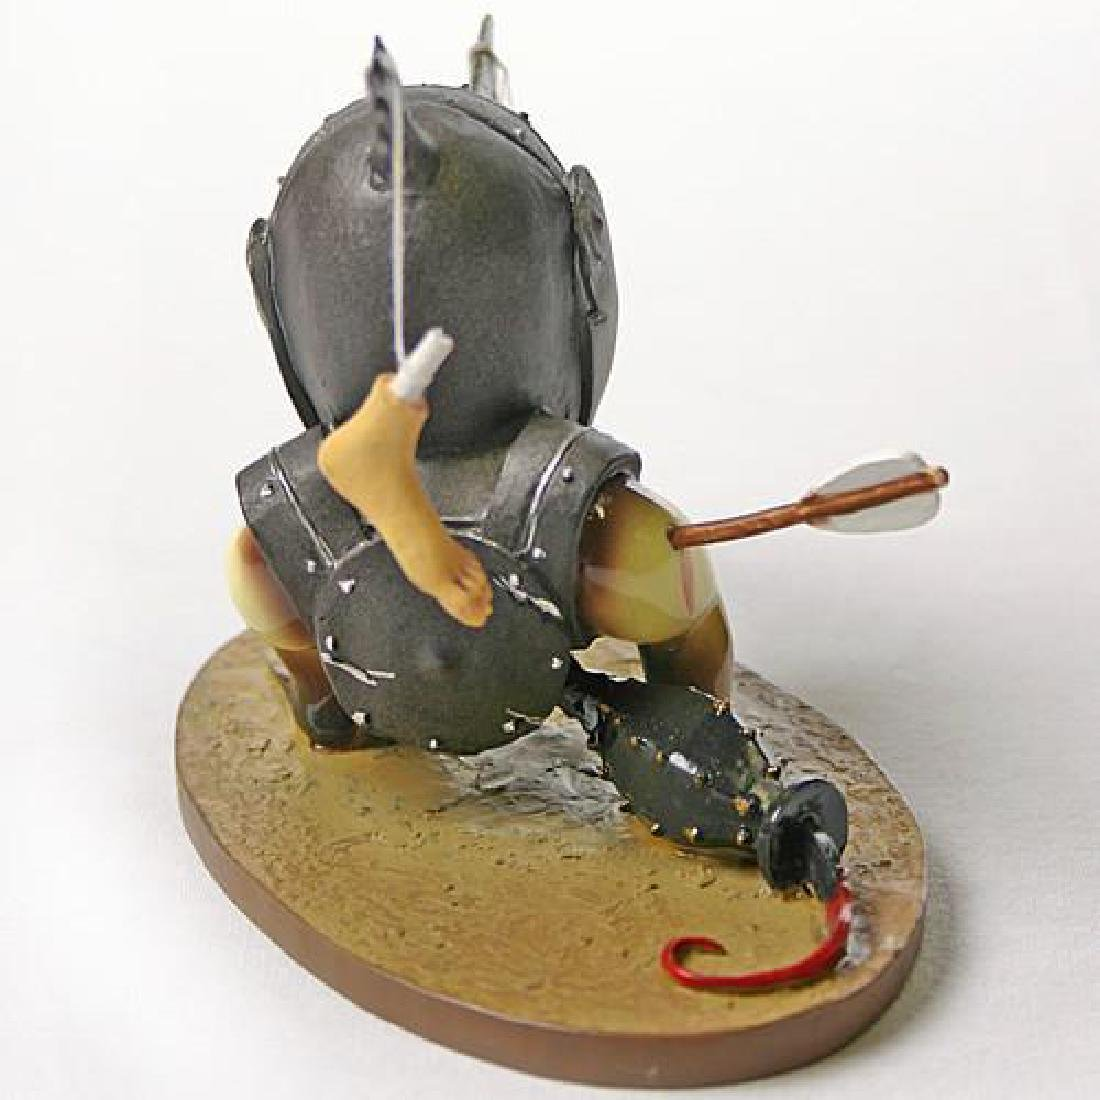 After Jheronimus Bosch: Helmeted Bird Monster statue - 3